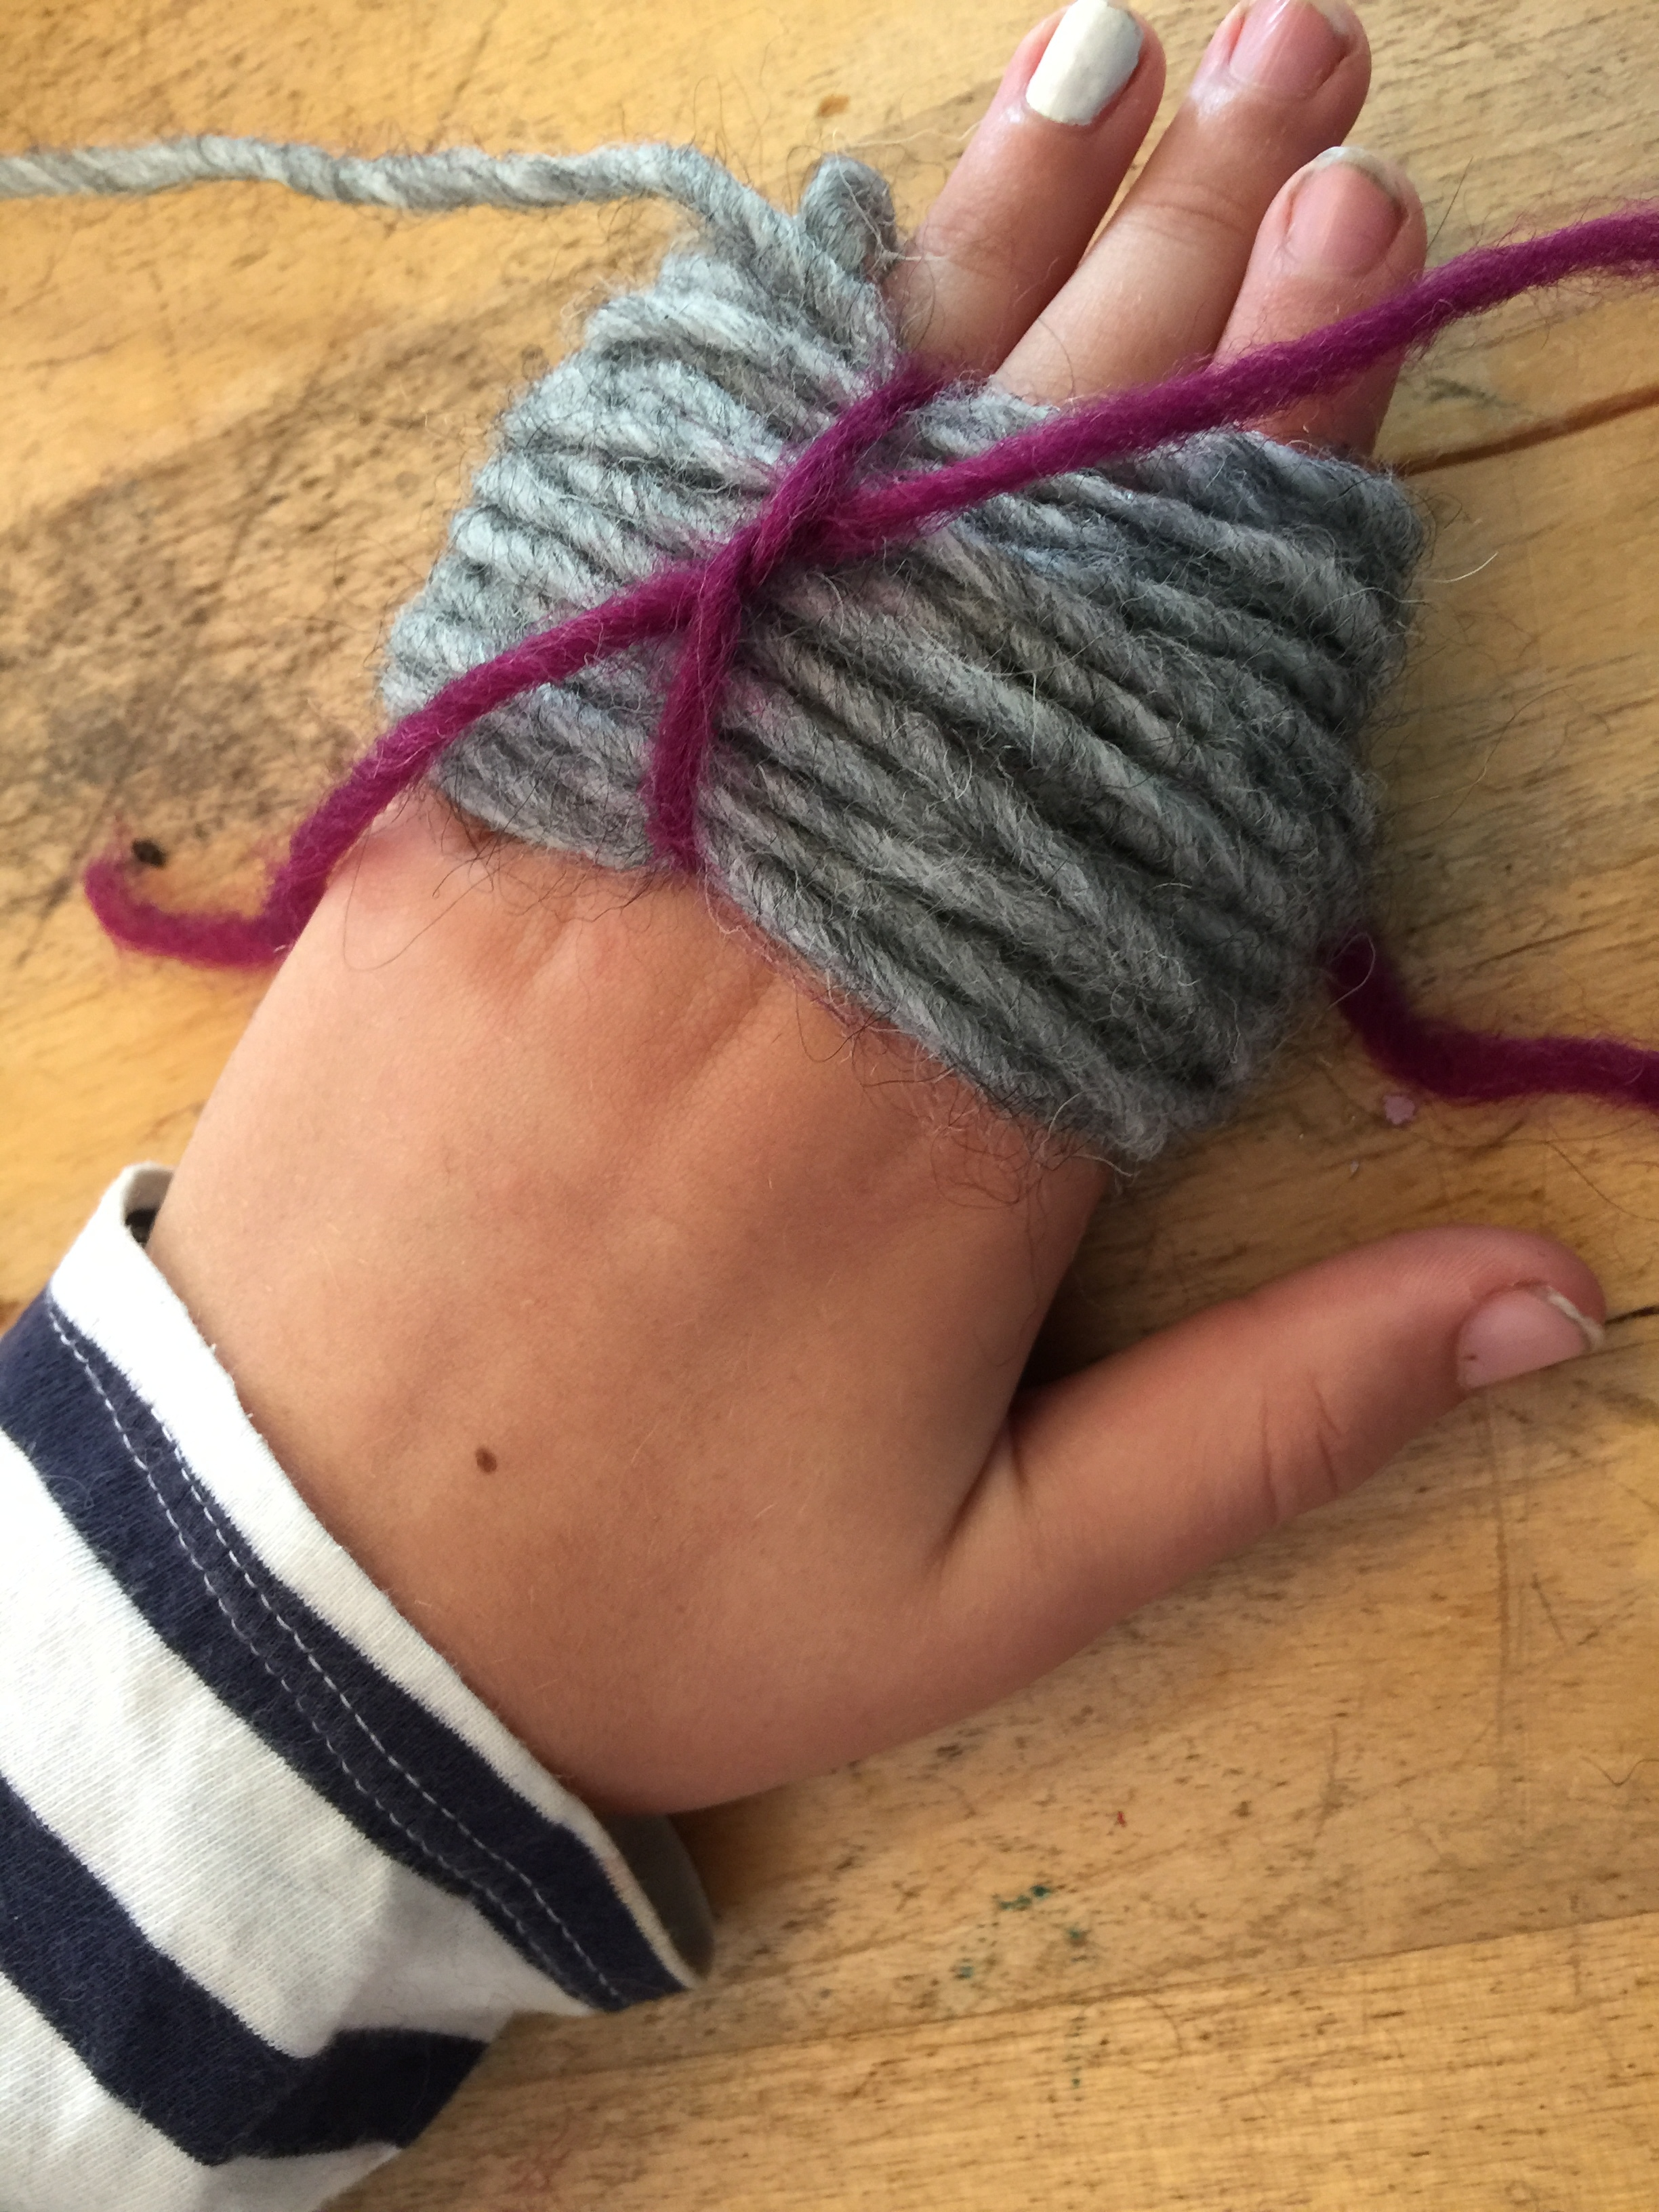 Once those fingers are wrapped in a fat layer of woolly loops, bring the strands forward and use them to tie the loops together tightly, into a figure 8 shape.